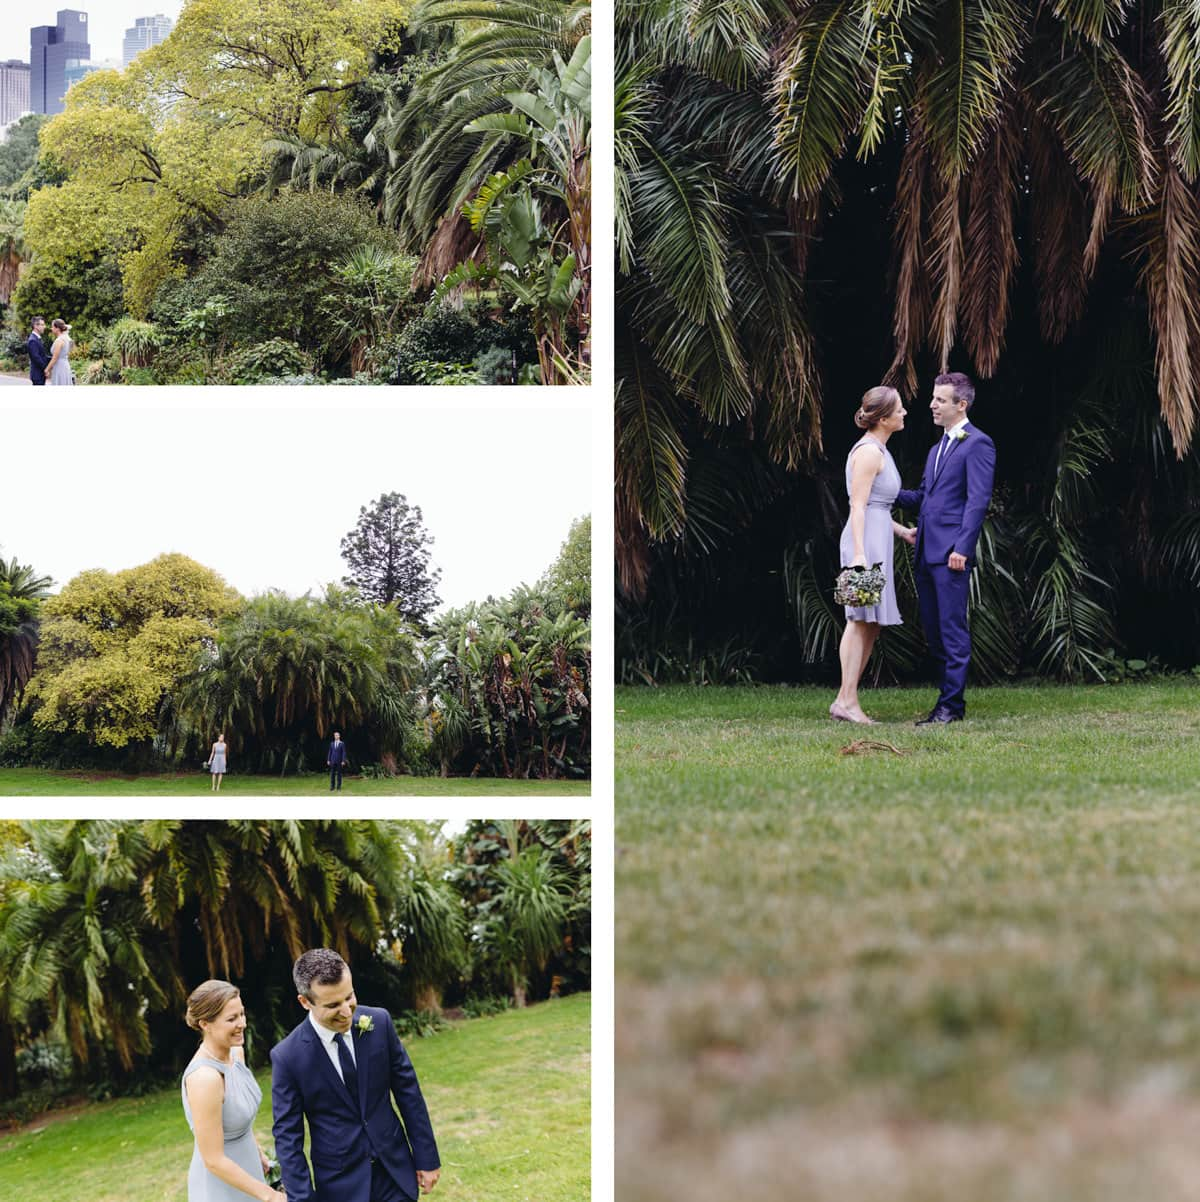 treasury gardens wedding photographer in melbourne